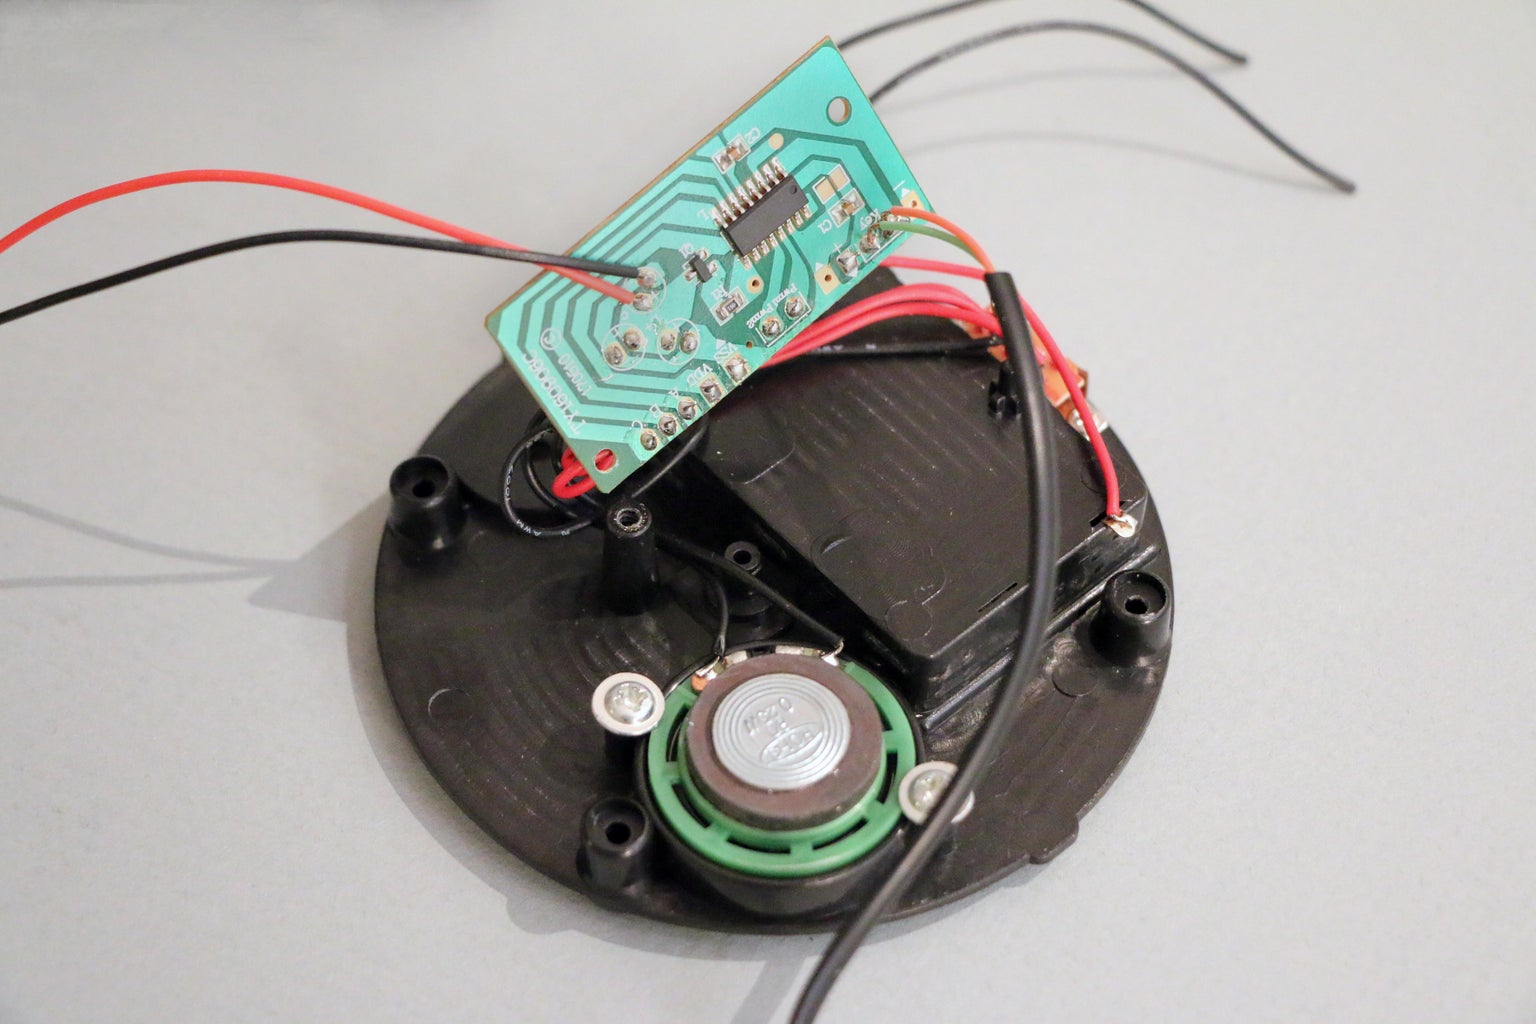 Wiring the Thunder/Strobe Unit and Doorbell